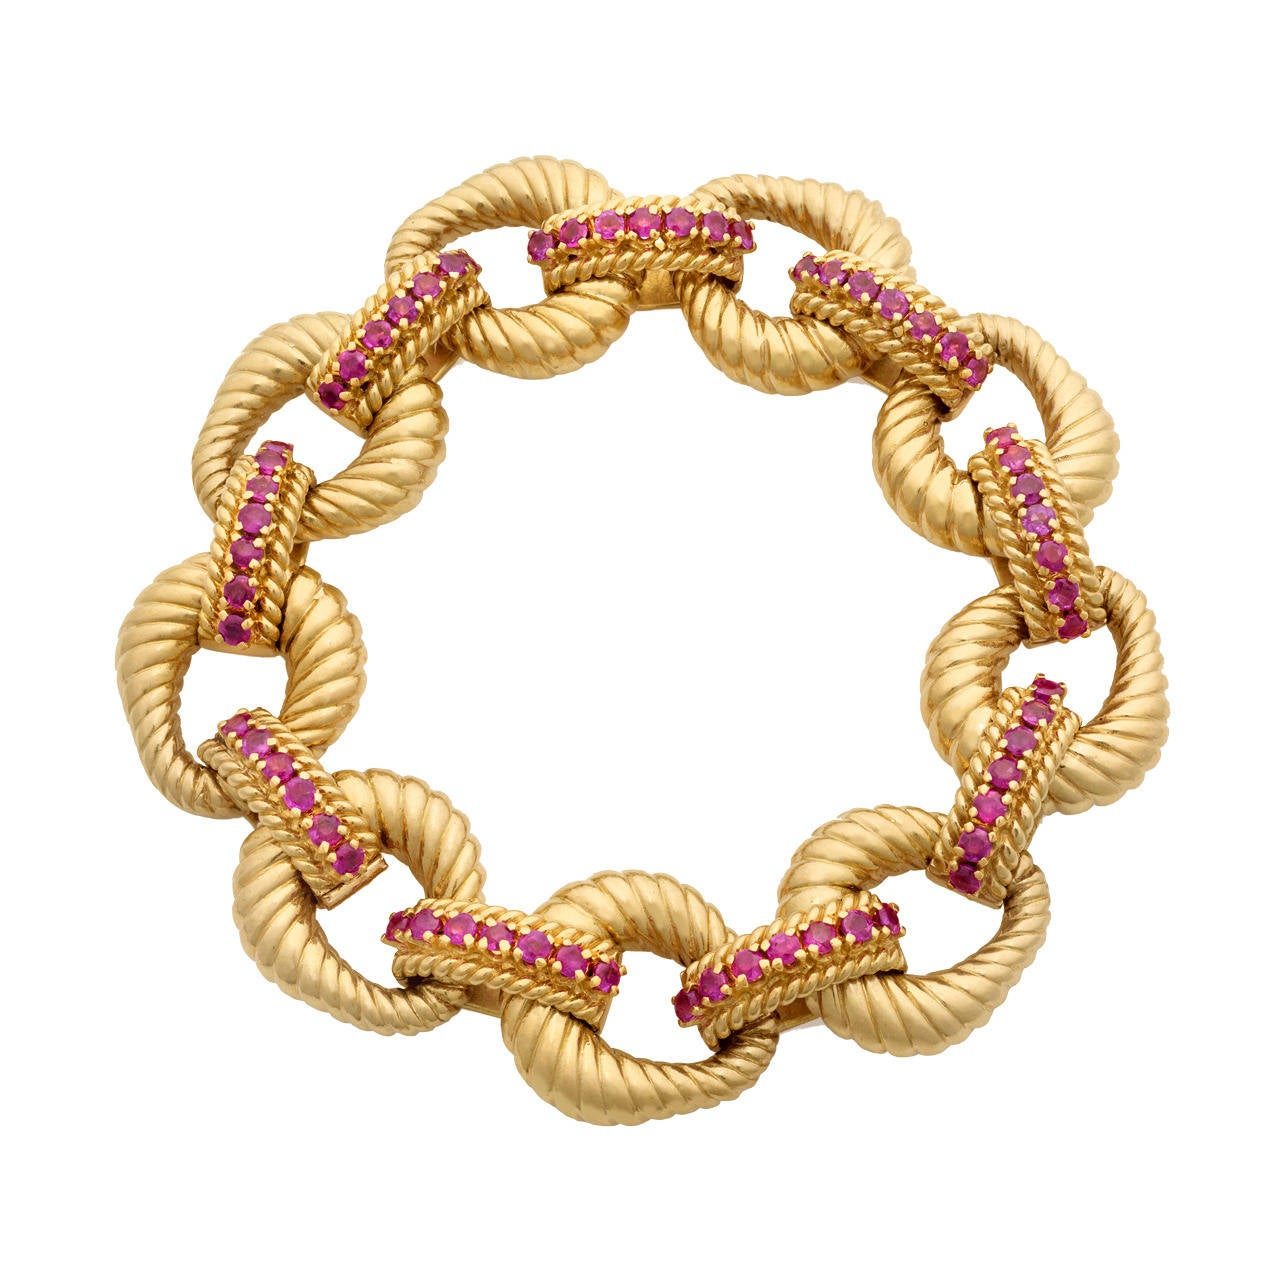 Tiffany & Co. 18k Yellow Gold Heavy Link Bracelet with Rubies